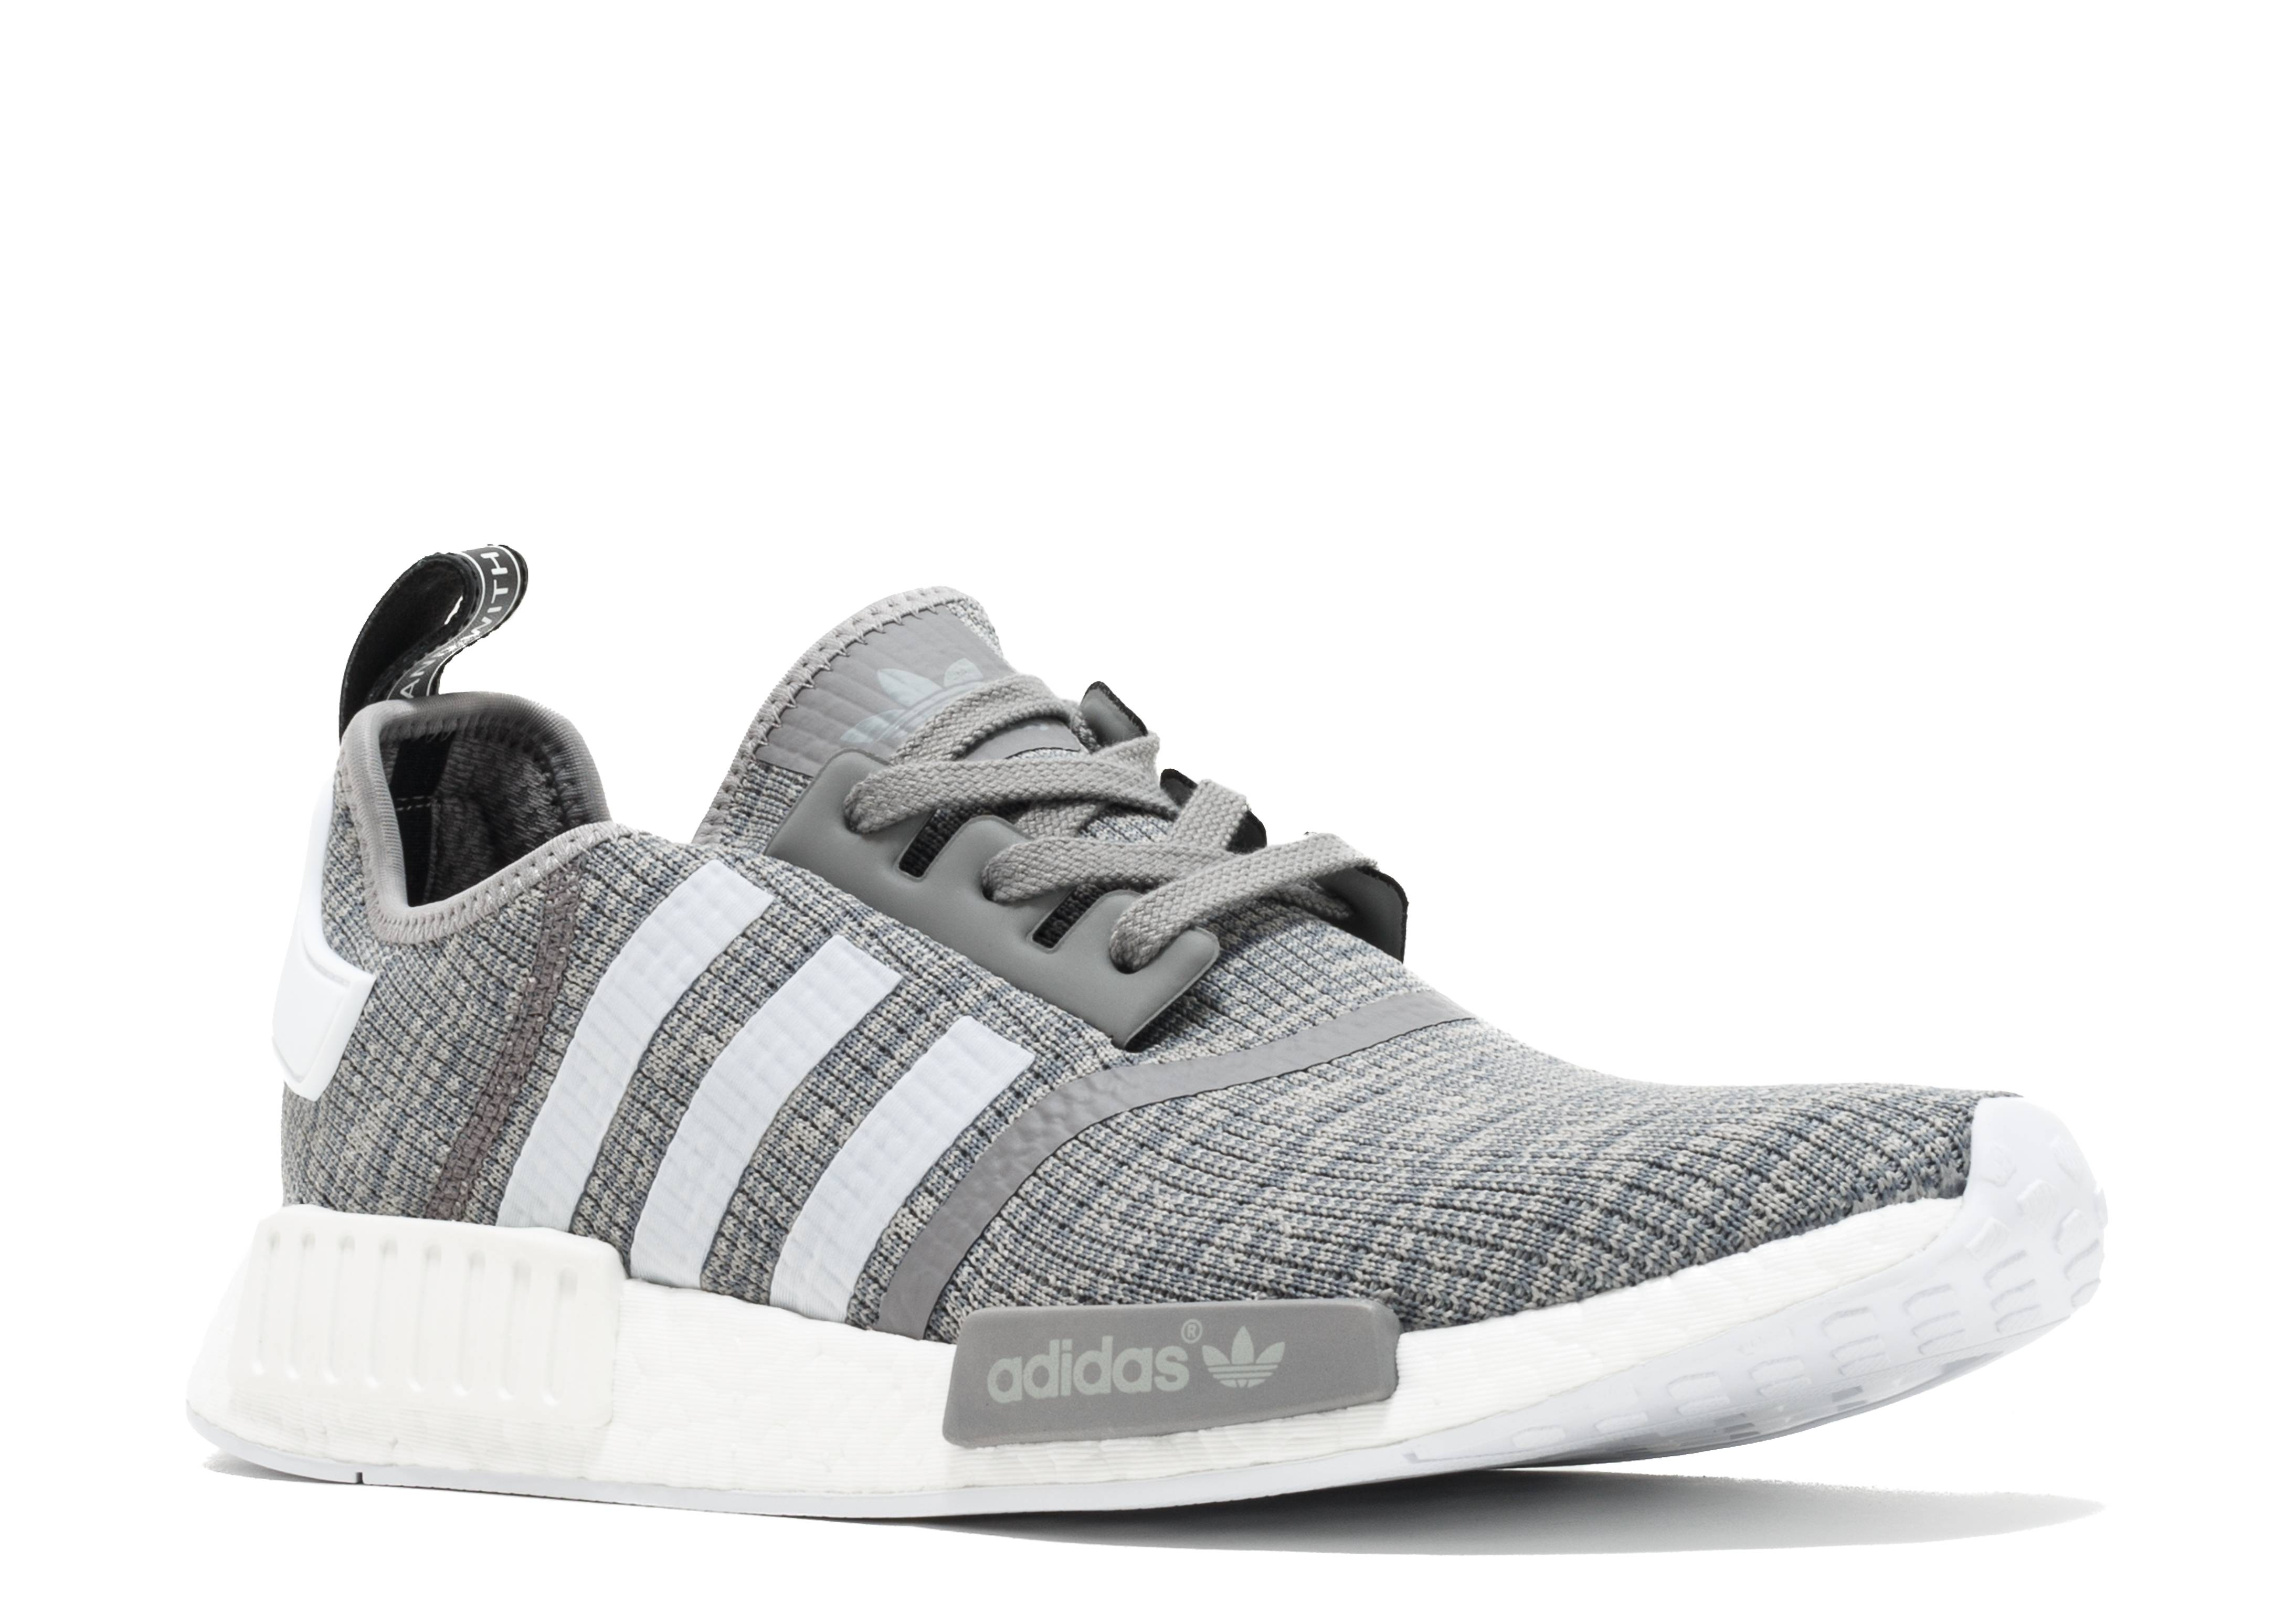 The NMD R1 Glitch Camo Is On The Way For Ladies Tip Solver